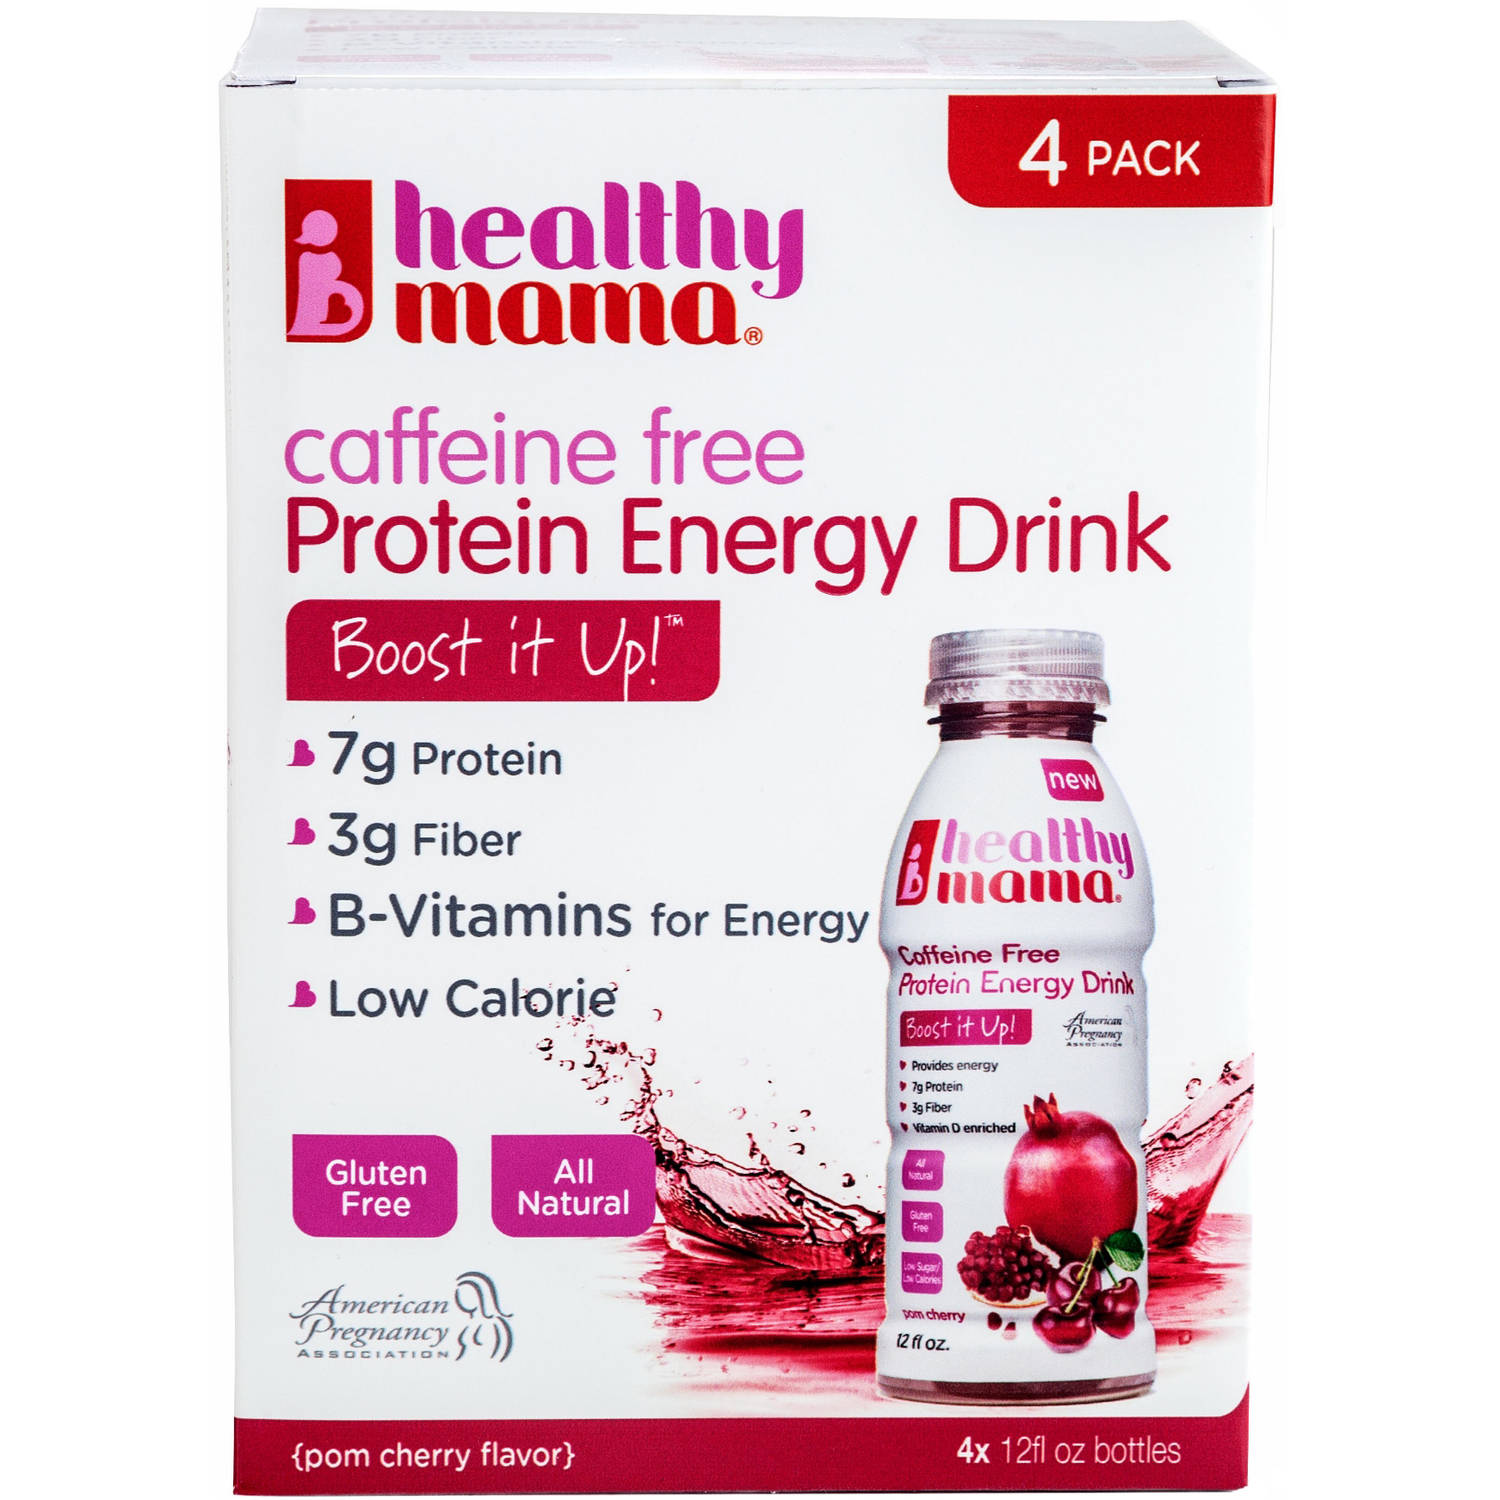 Healthy Mama Boost it Up! Pom Cherry Caffeine Free Protein Energy Drinks, 12 fl oz, 4 count